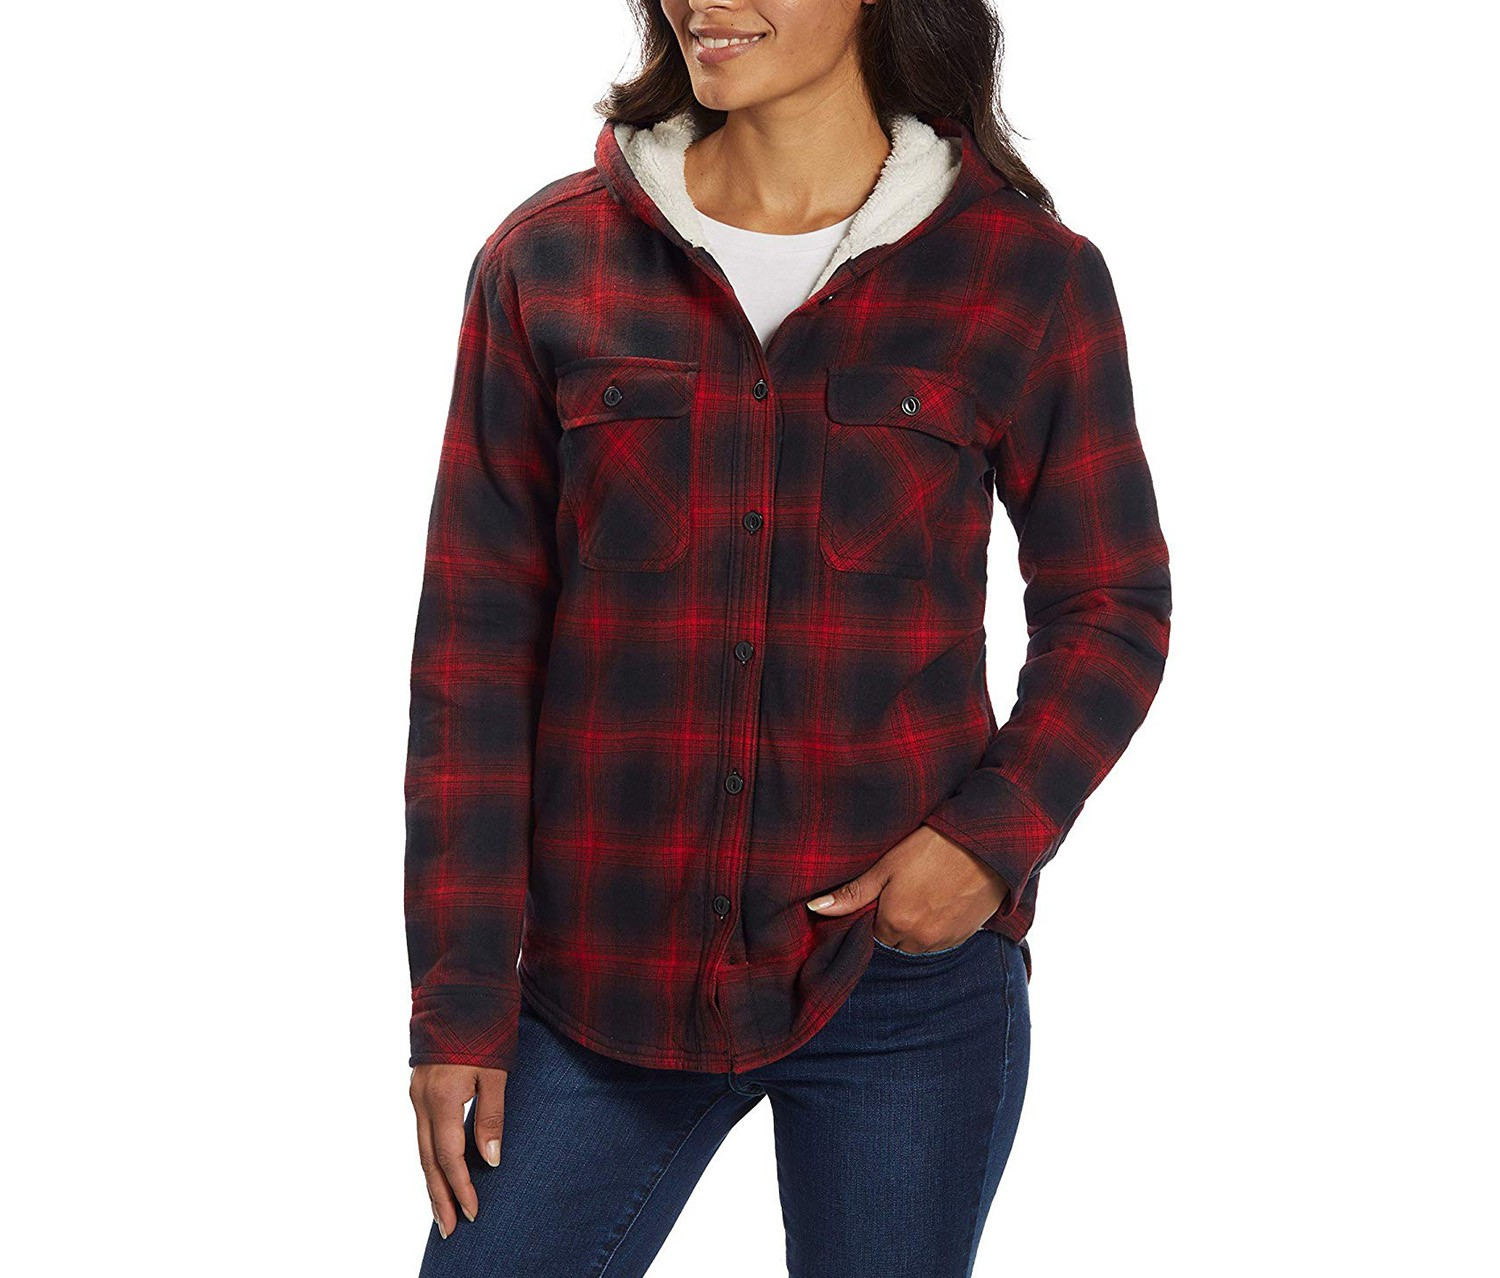 Boston Traders Women/'s Hooded Flannel Sherpa Button-Up Plaid Jacket *NEW*